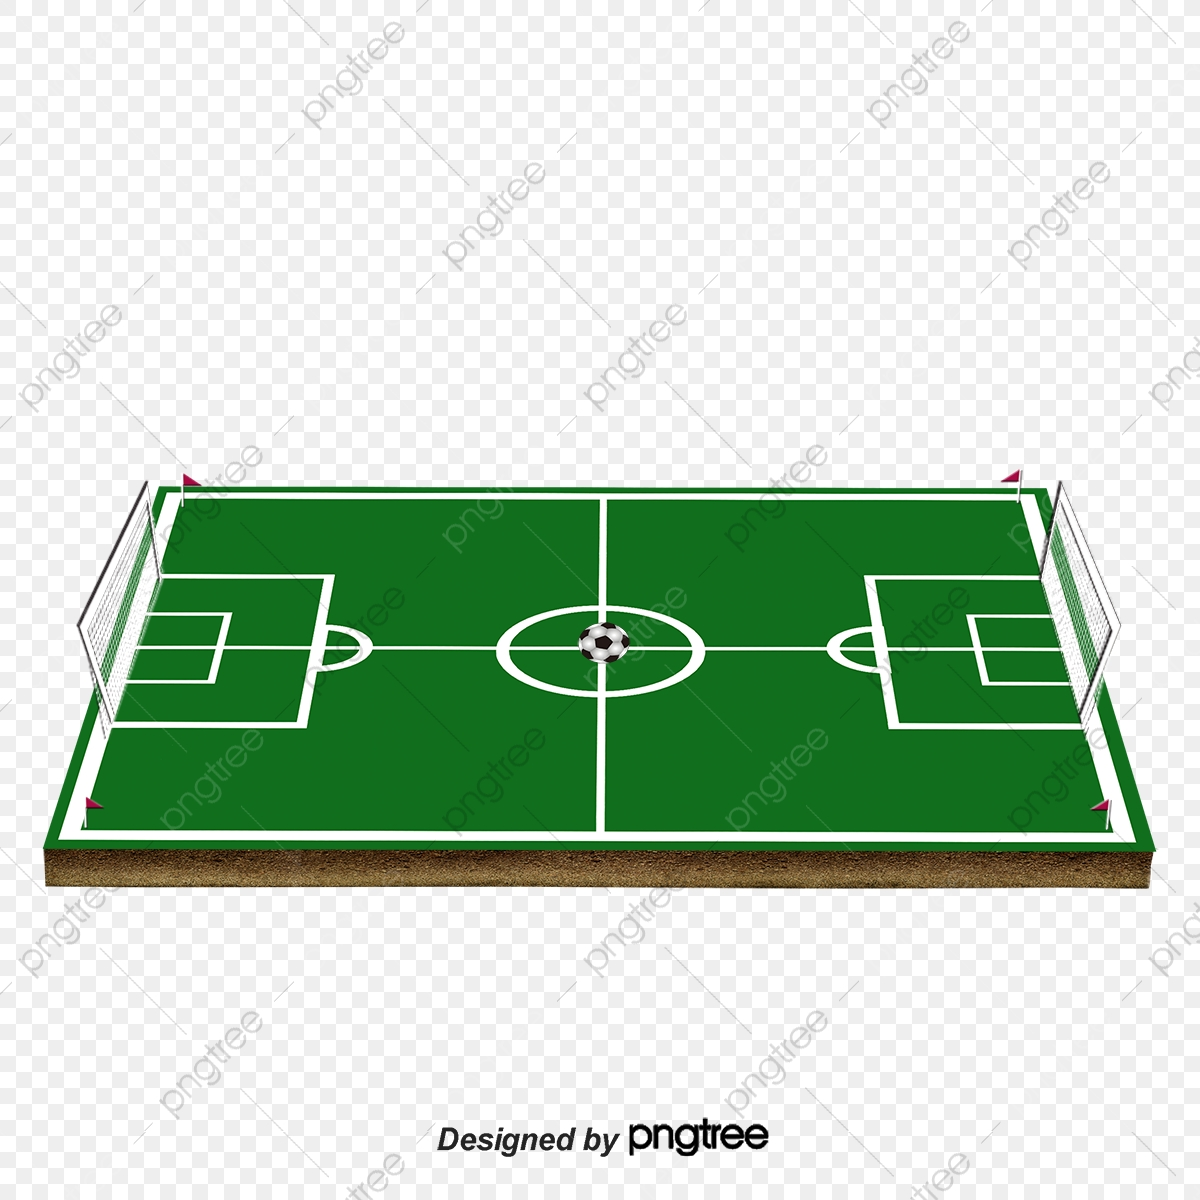 Soccer or football on grass field with green bokeh - Download Free Vectors,  Clipart Graphics & Vector Art